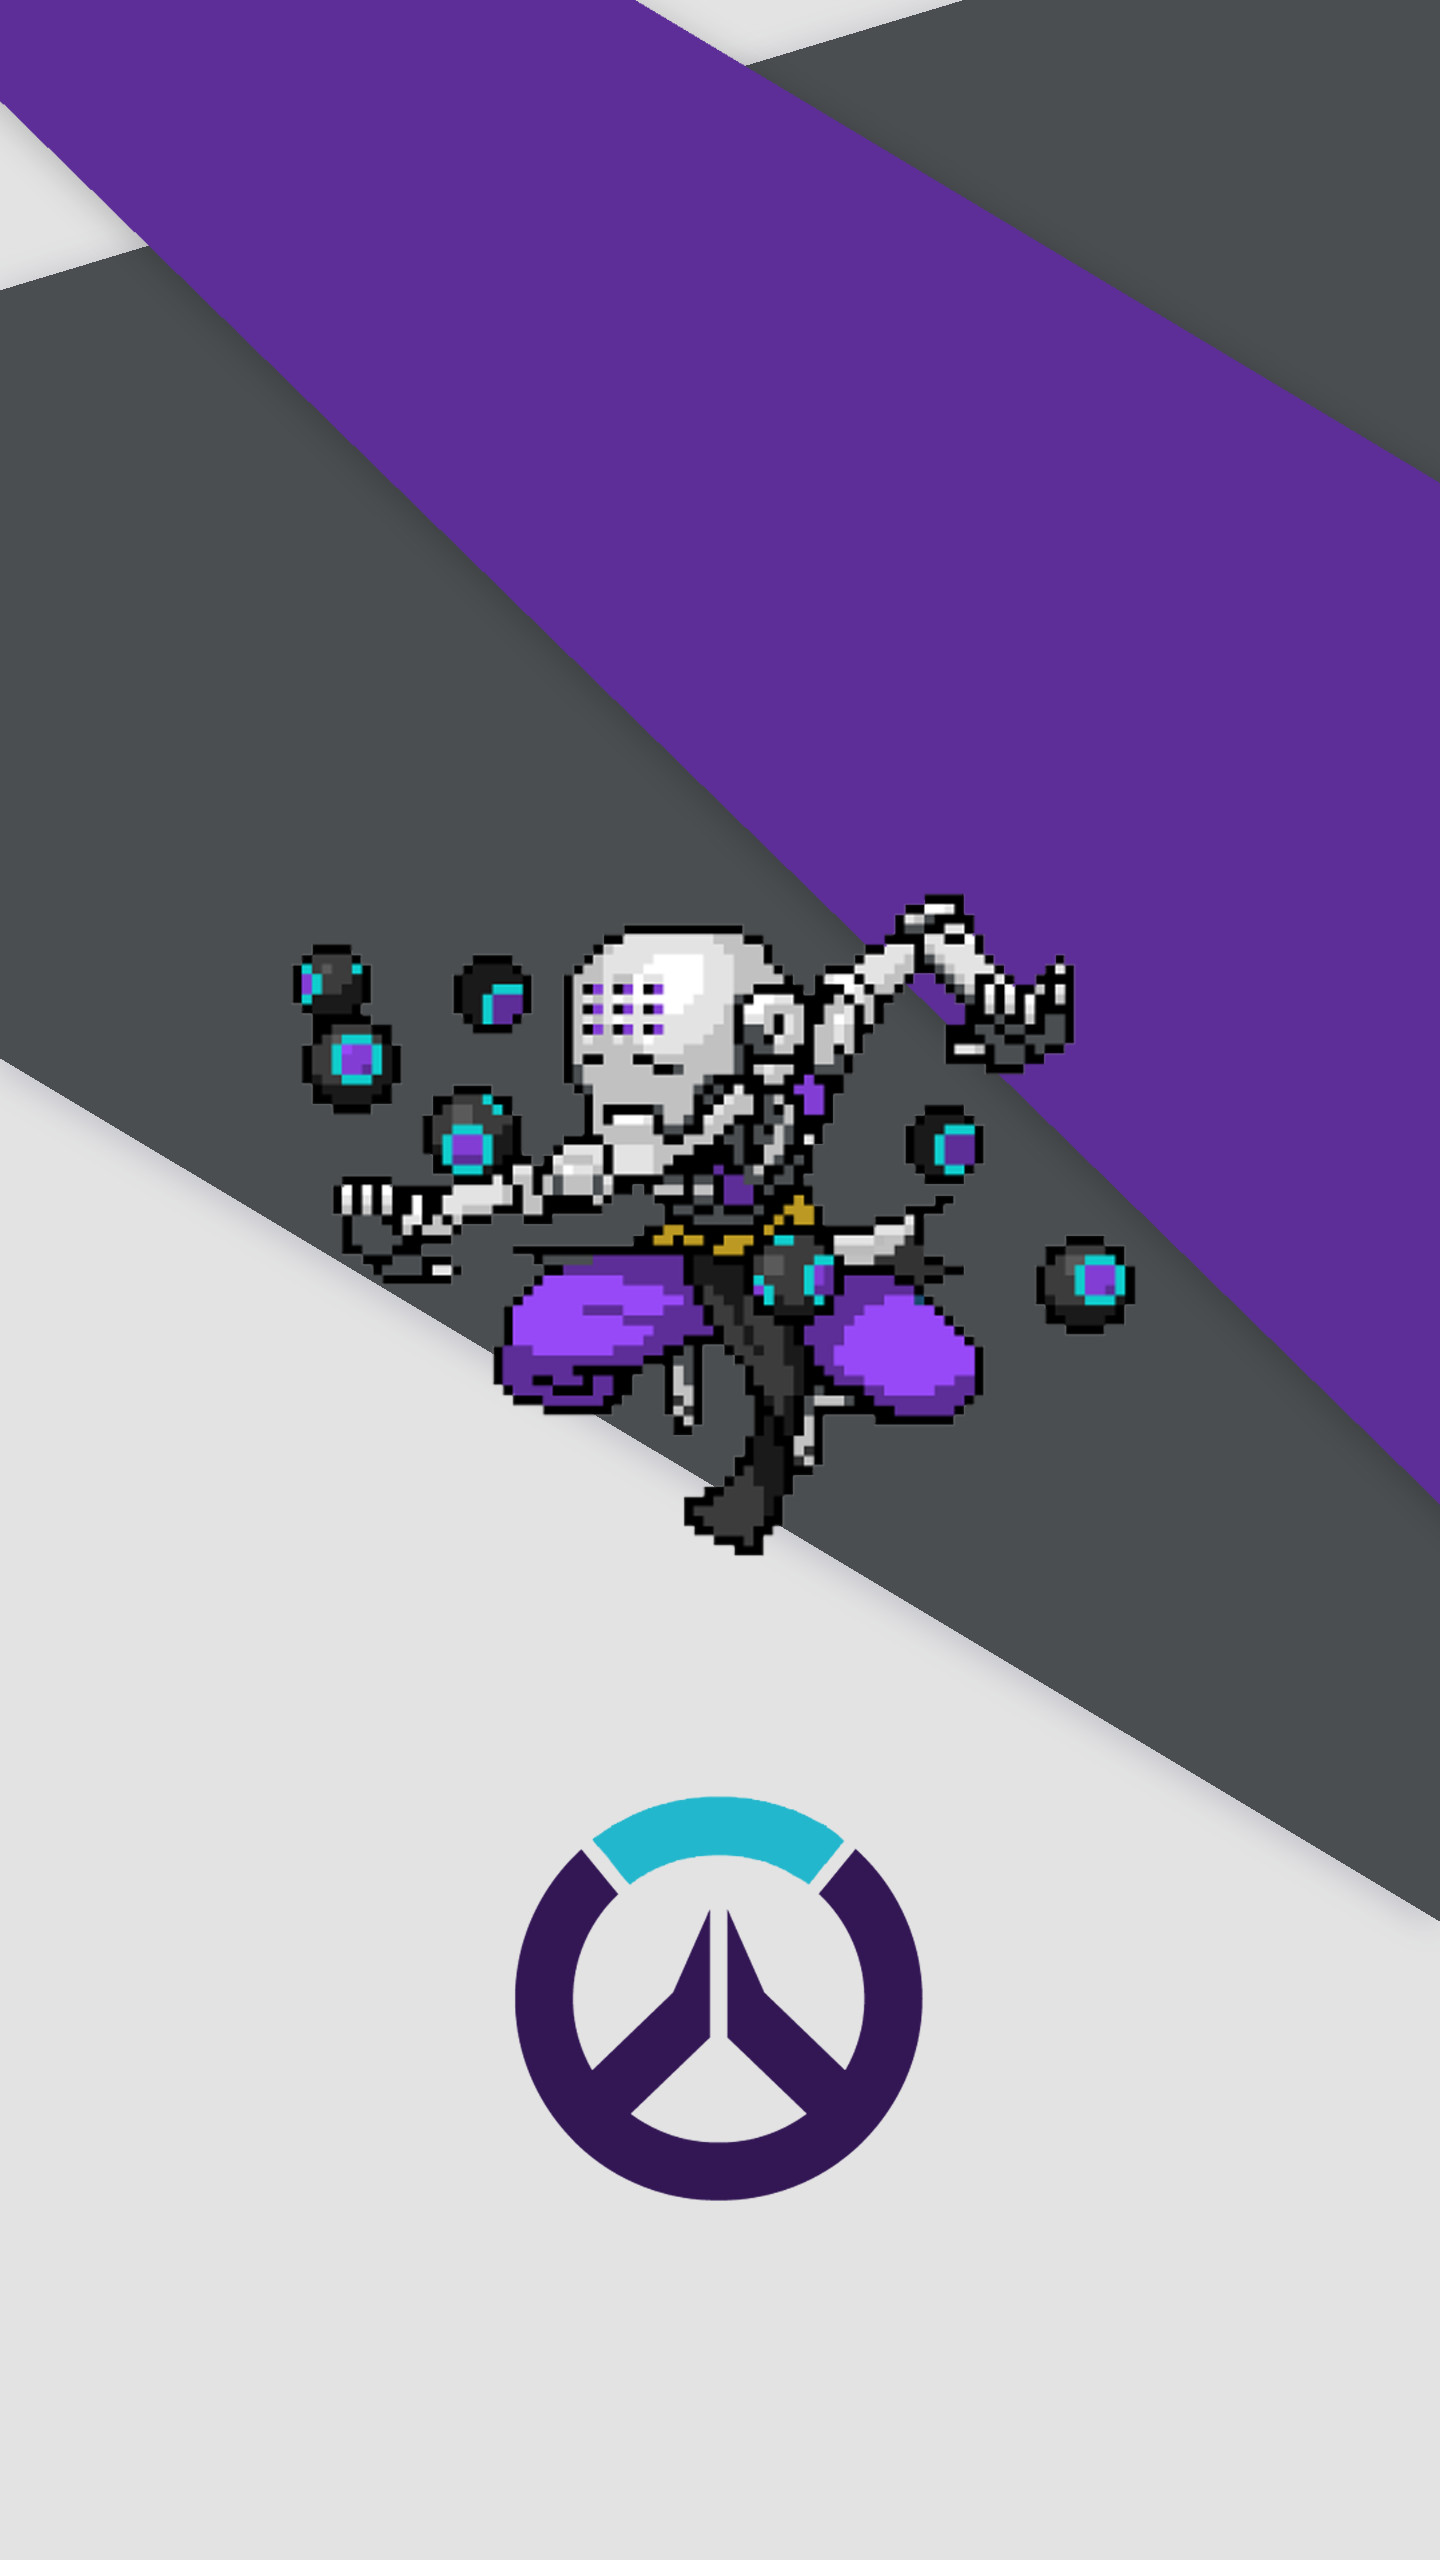 1440x2560 Zenyatta - 'Overwatch' Pixel Phone Wallpaper by artofsully ...